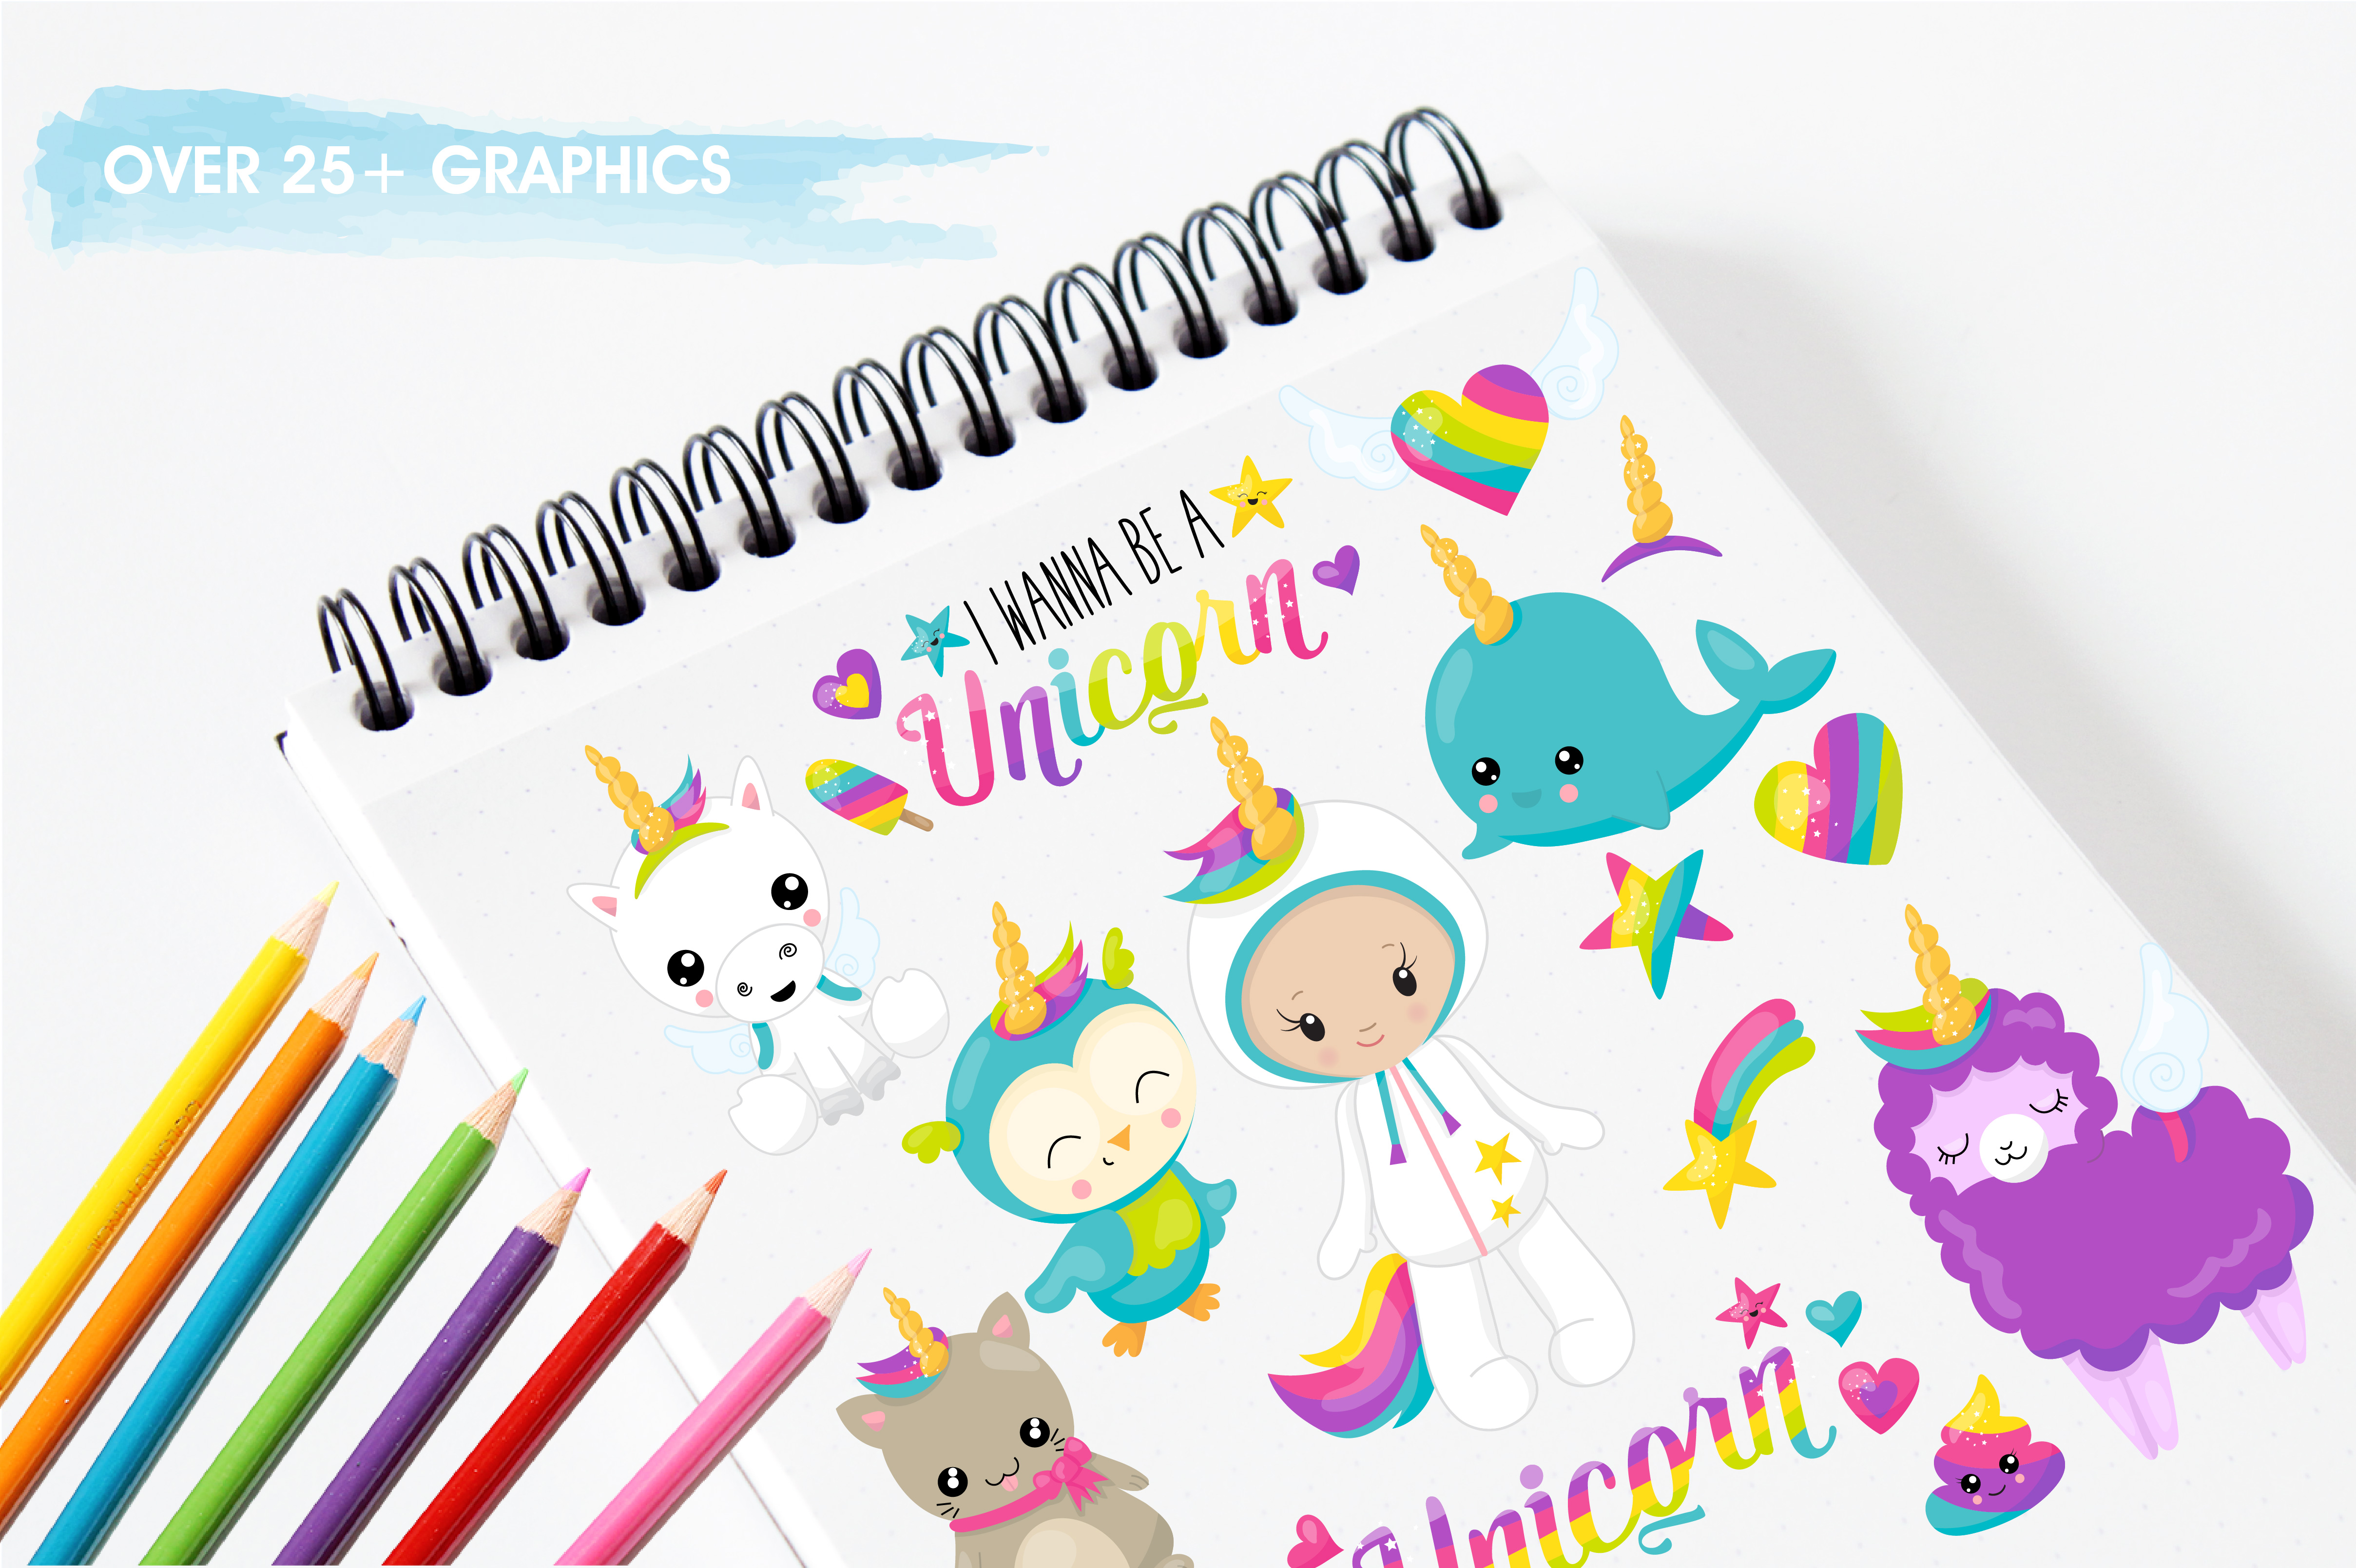 Wannabe unicorn graphics and illustrations example image 3